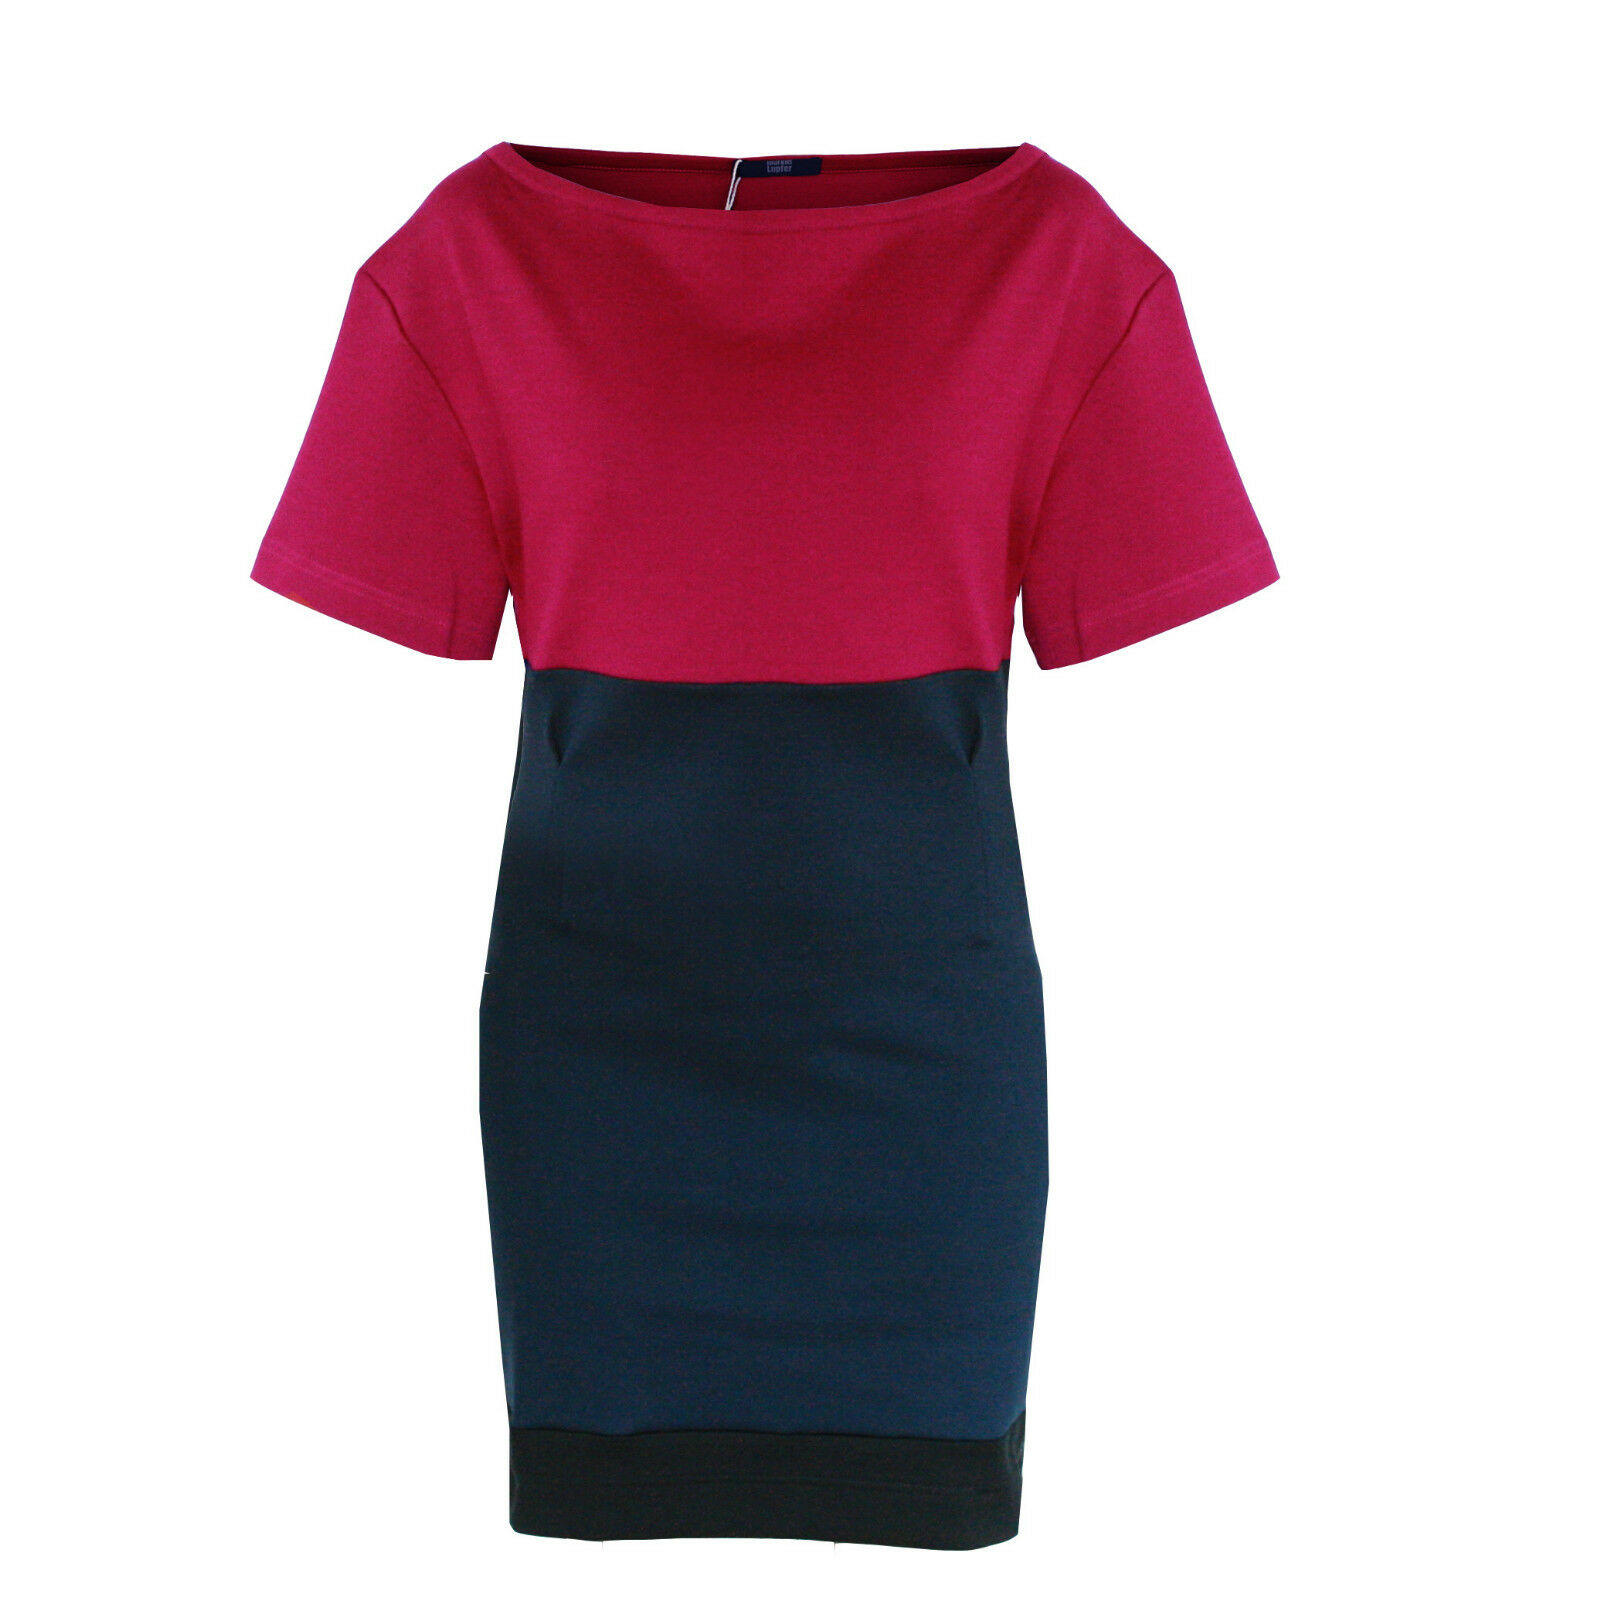 MARKUS LUPFER Farbeblock navy fuchsia dress fitted darted cocktail dress L NEW